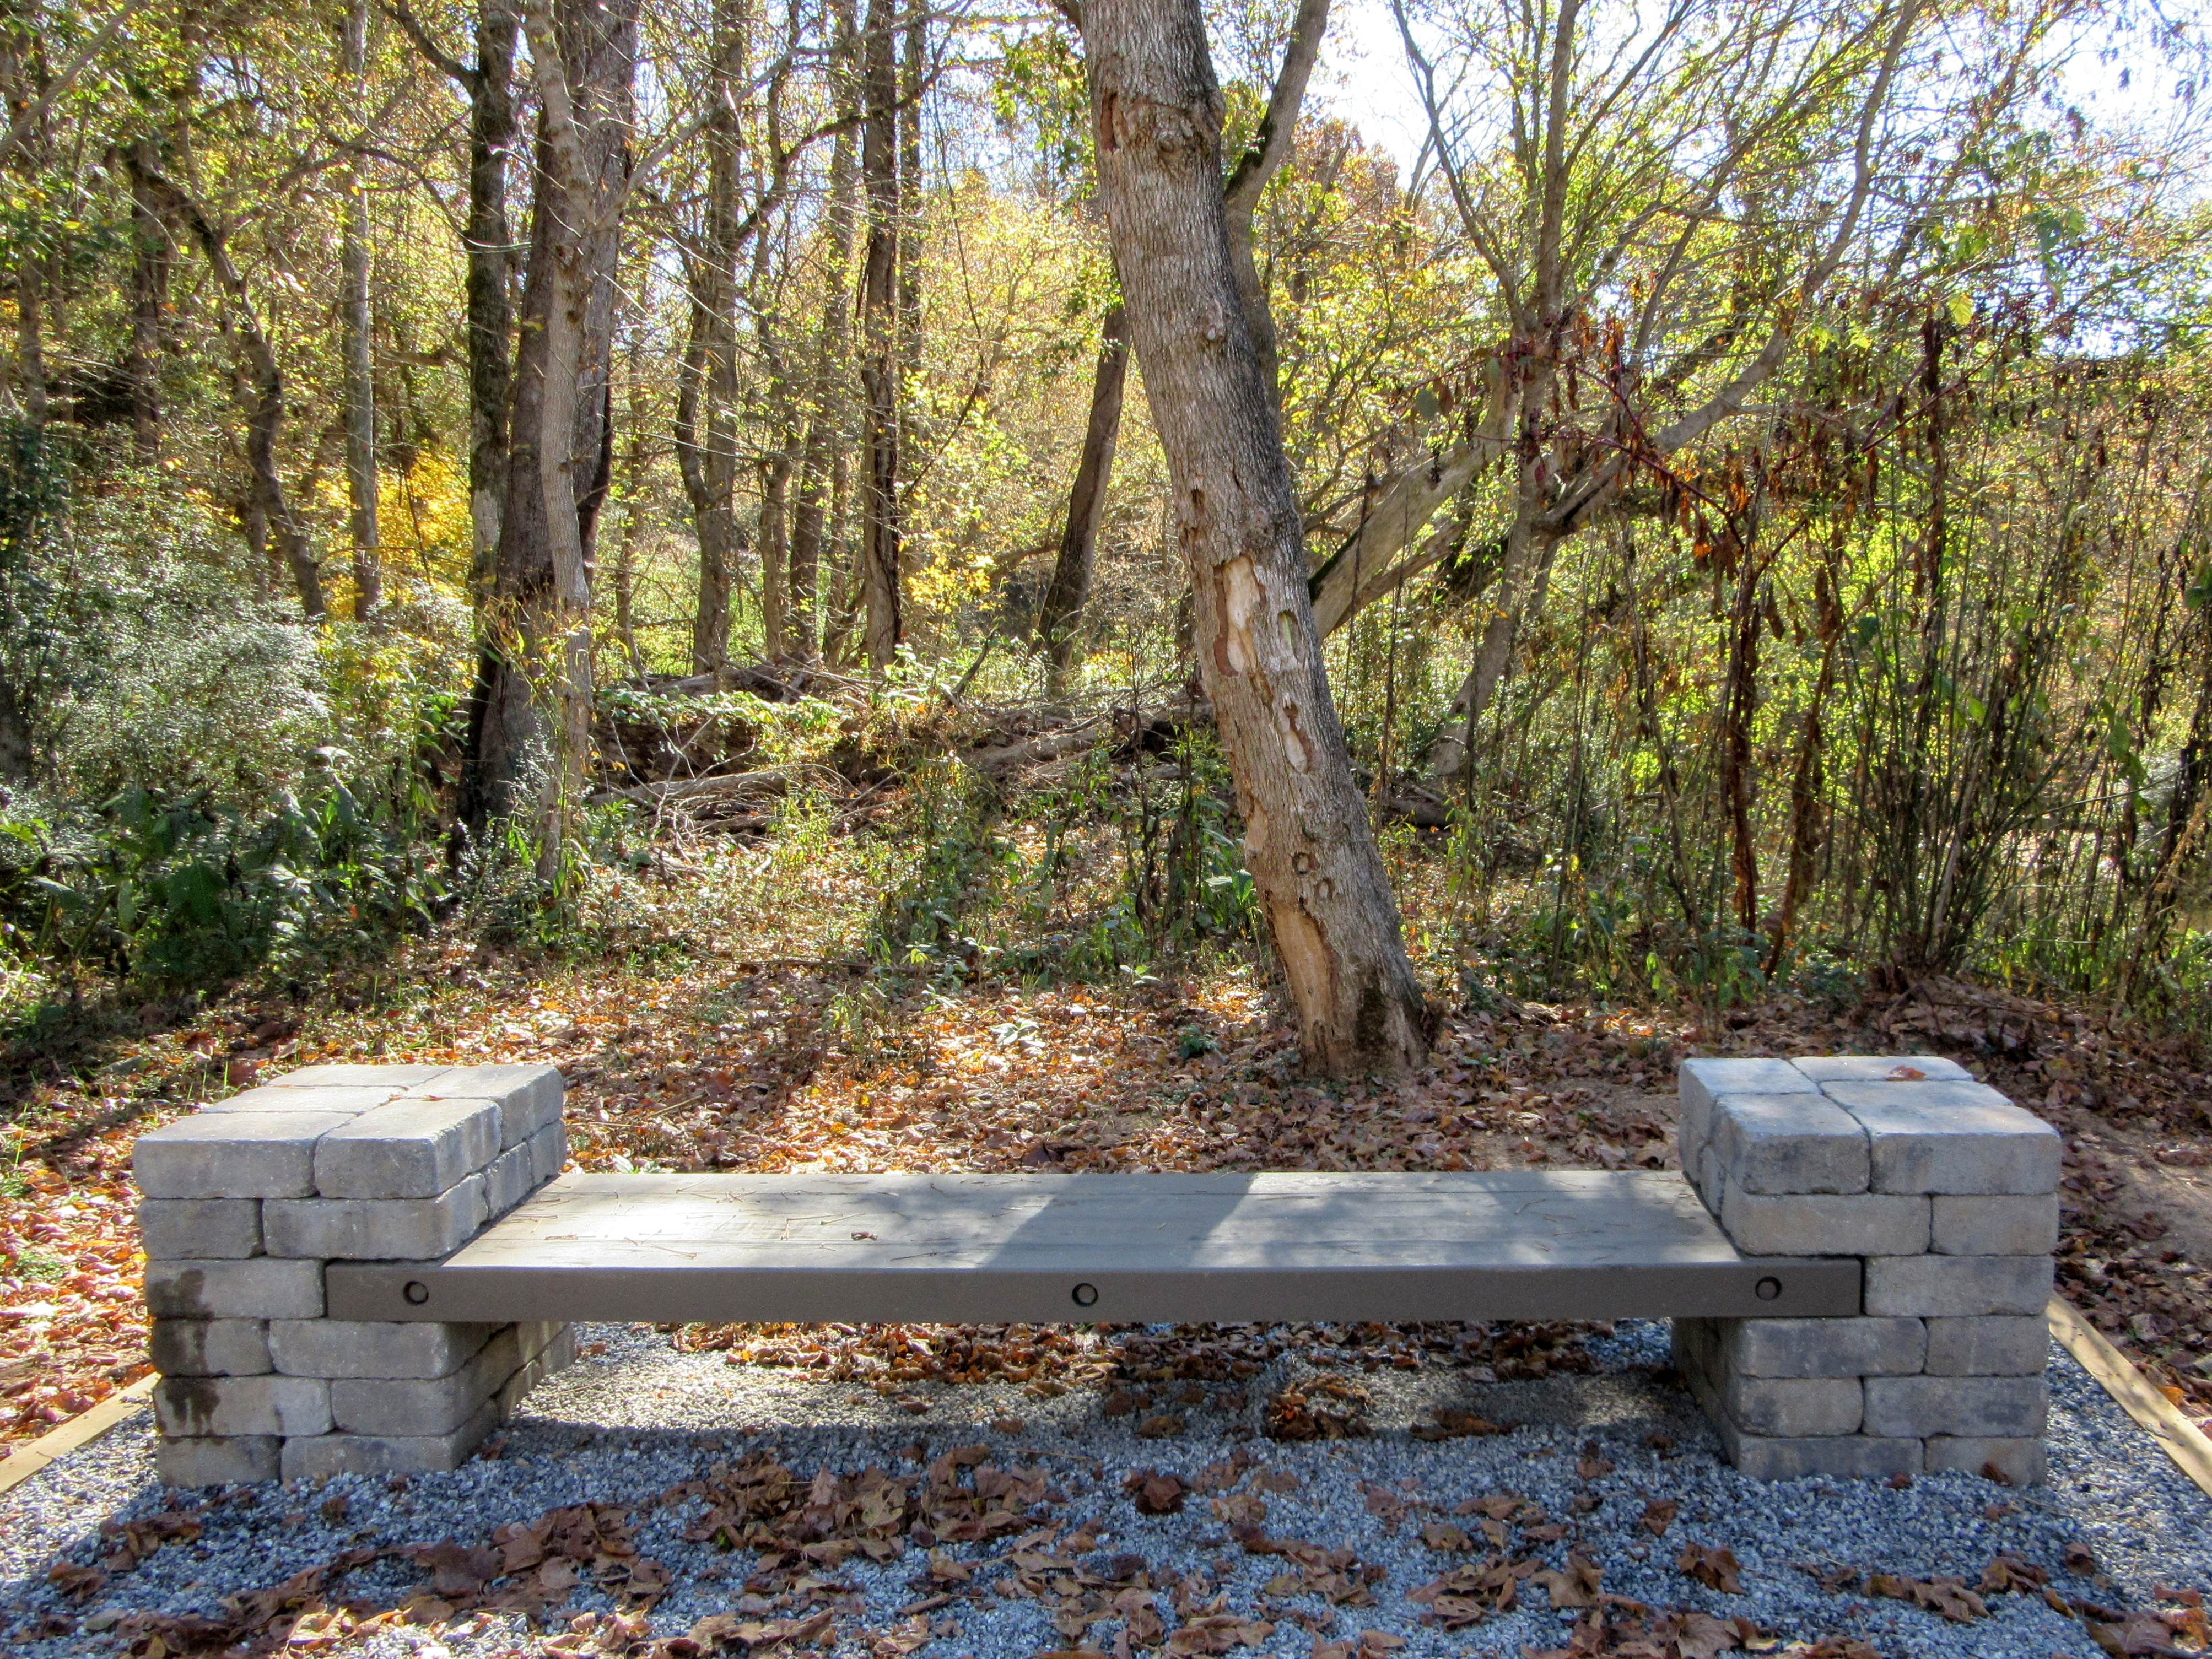 Benches for resting along the trail. | Hiking in Shelby, North Carolina: the First Broad River Trail.